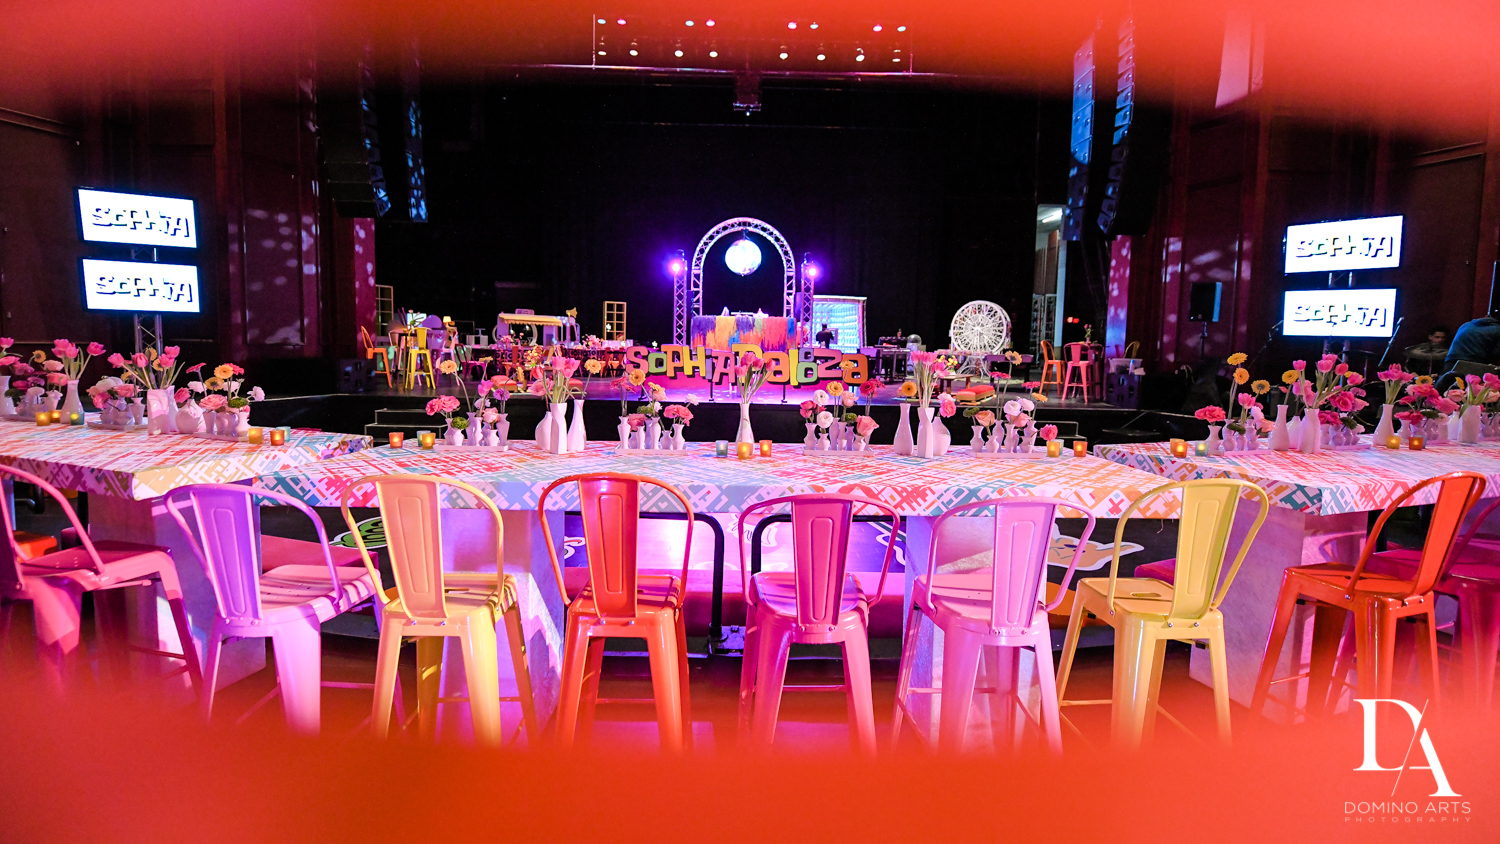 colorful decor at Music Festival Bat Mitzvah at The Fillmore Miami Beach by Domino Arts Photography